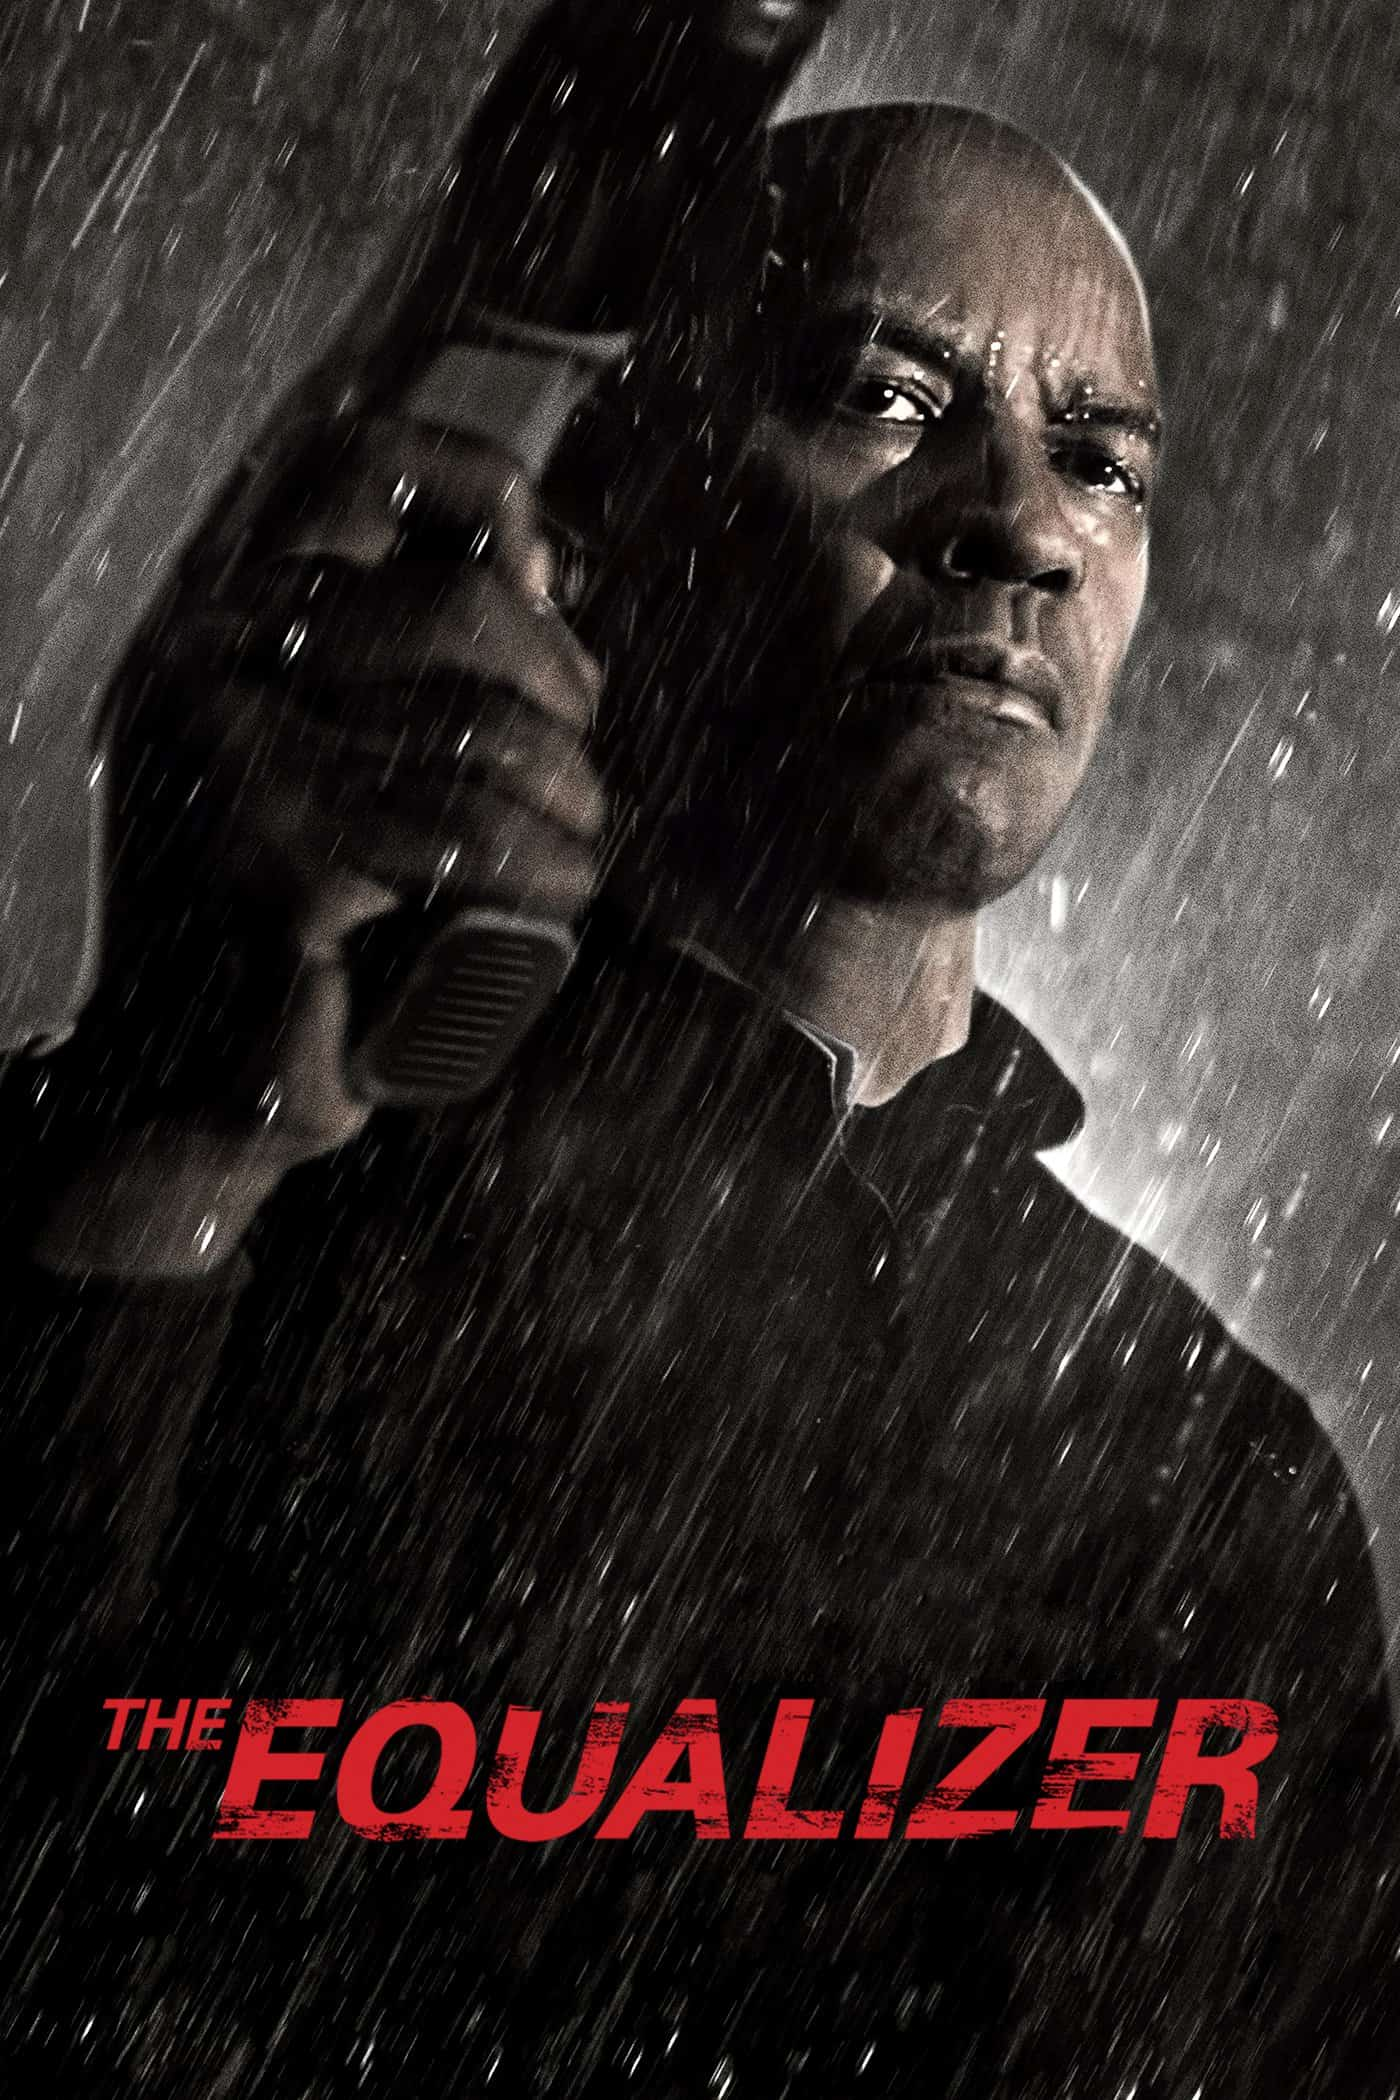 The Equalizer, 2014